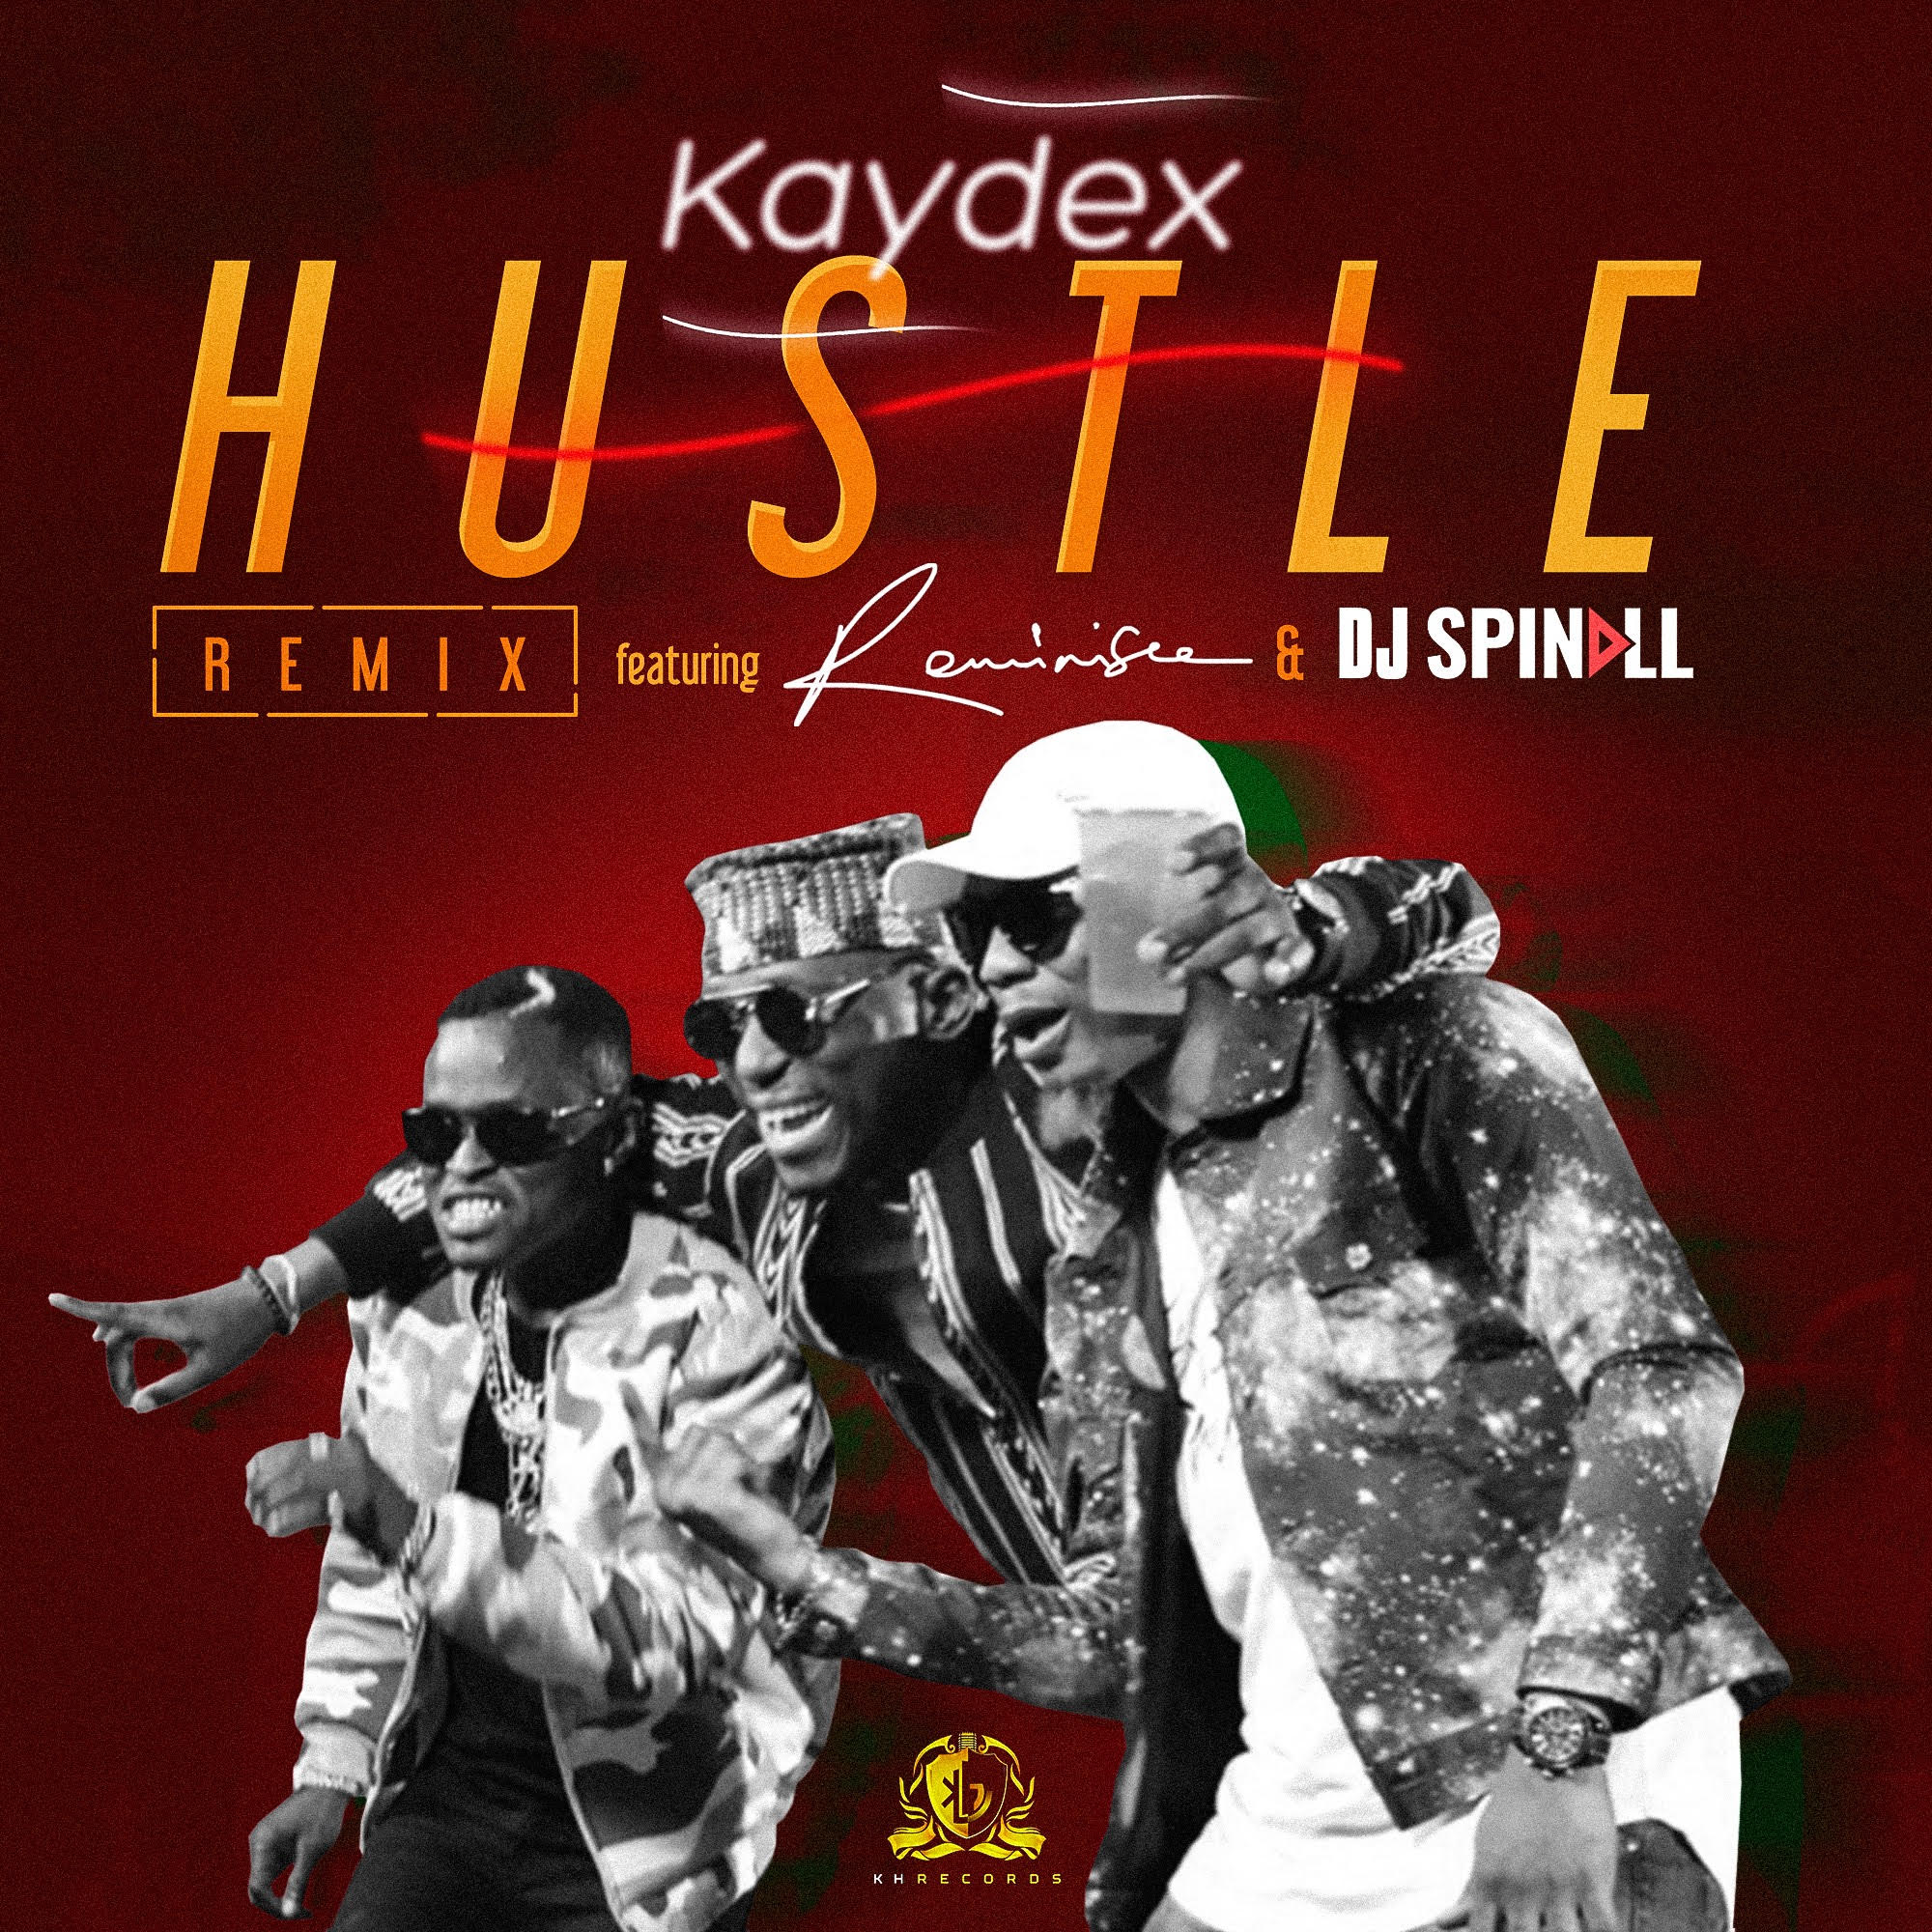 KayDex ft. DJ Spinall and Reminisce – 'Hustle' (Remix)